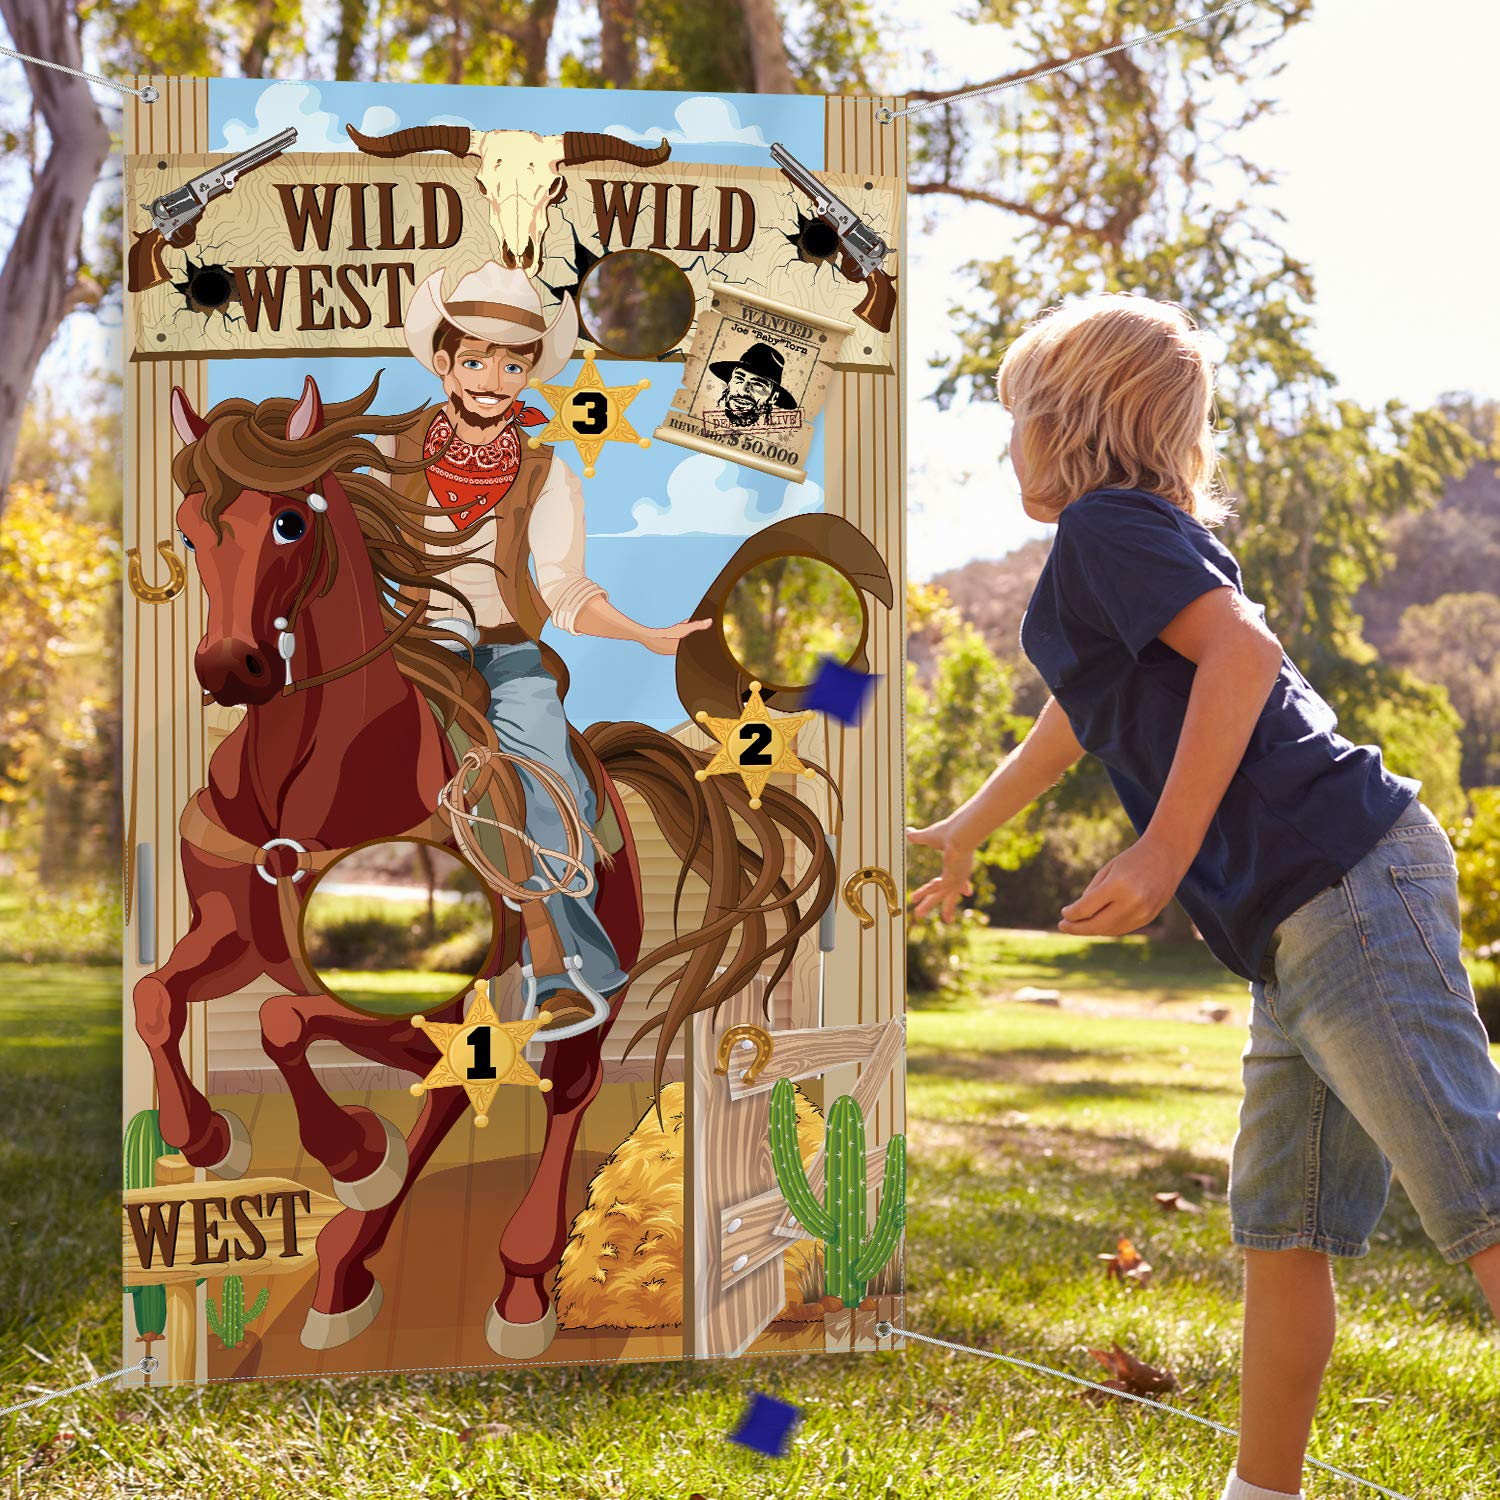 Western Party Cowboy Toss Games with 3 Bean Bags, Fun Western Game for Kids and Adults in Western Themed Activities Western Cowboy Decorations and Supplies by Blulu